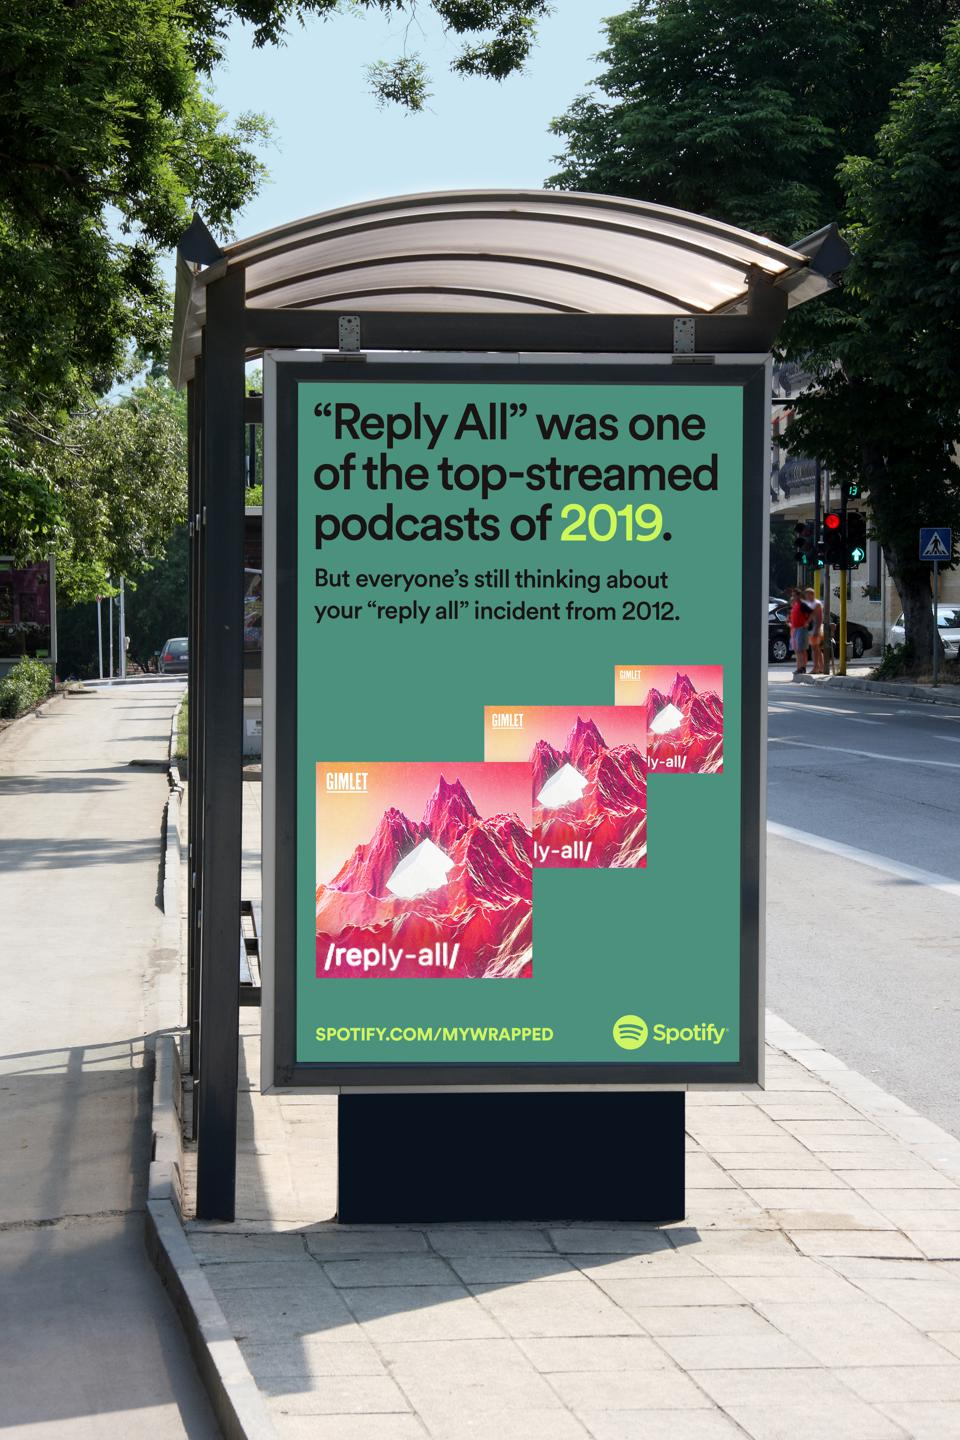 Spotify is advertising podcasts as part of its 2019 Wrapped campaign.